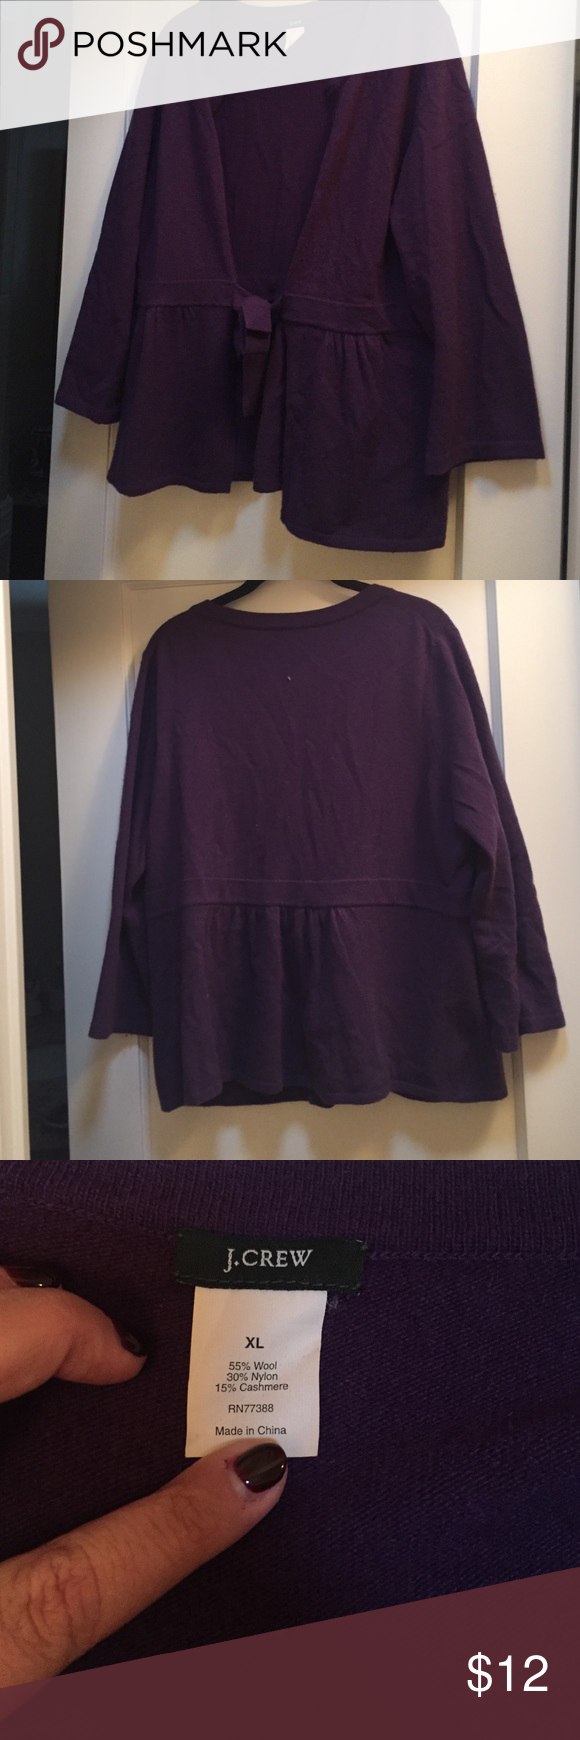 J Crew purple cardigan, XL Beautiful cardigan with tie. Excellent condition. J. Crew Sweaters Cardigans